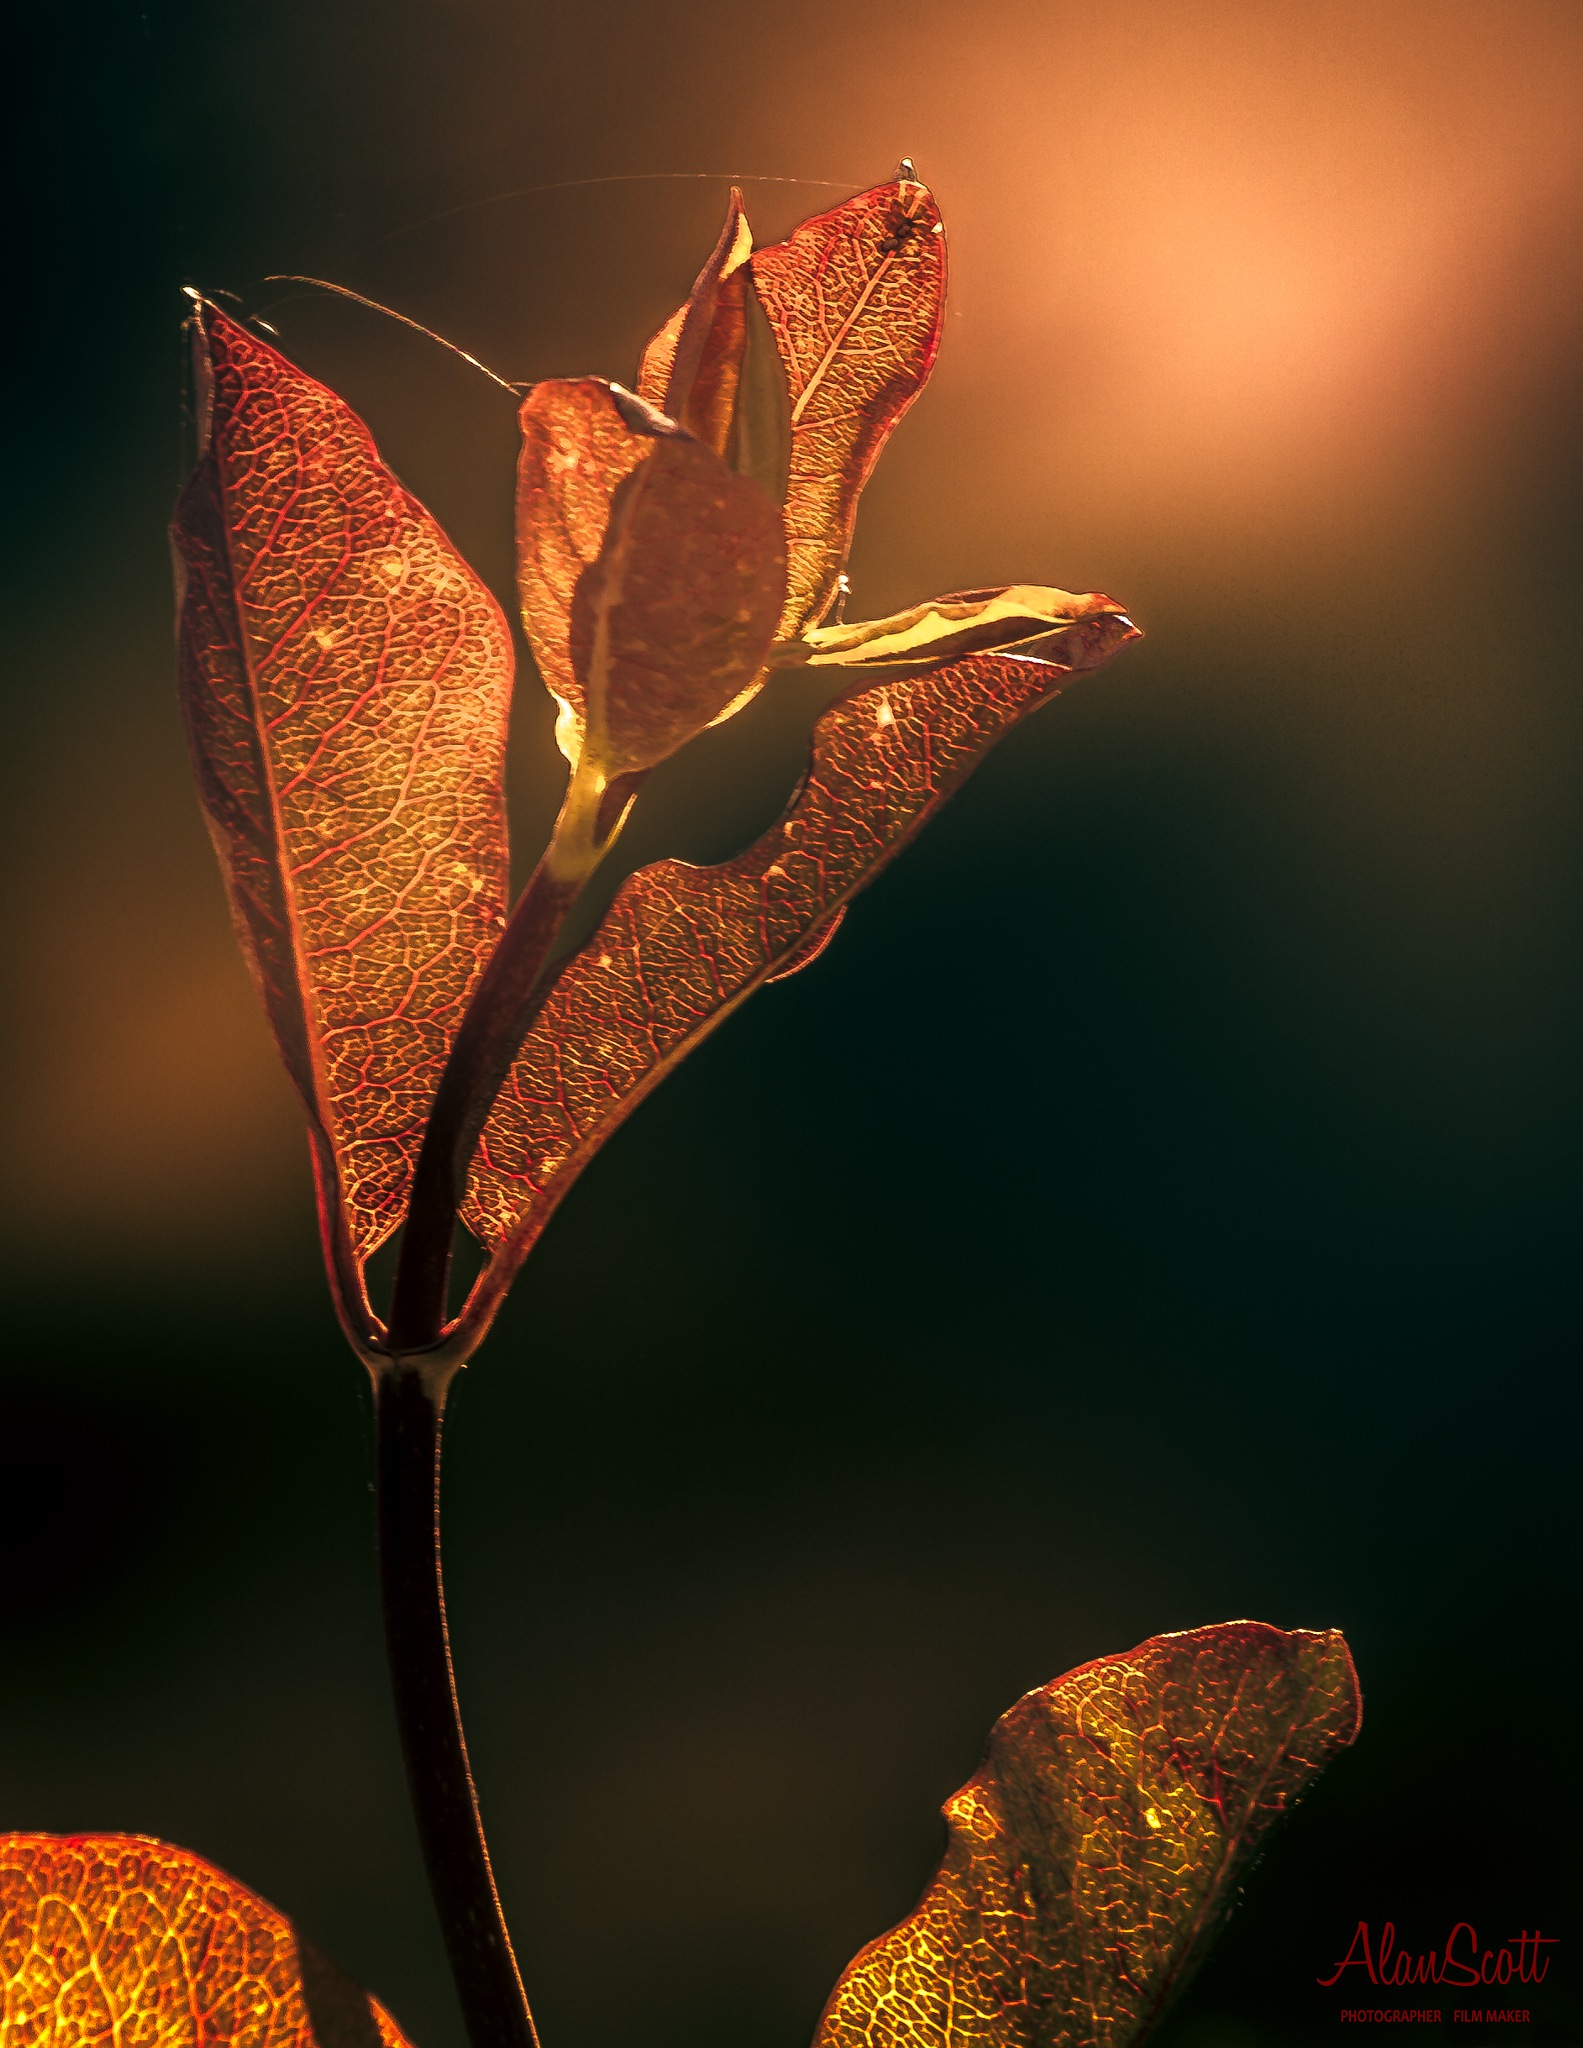 Plant at Sunset by alanscott